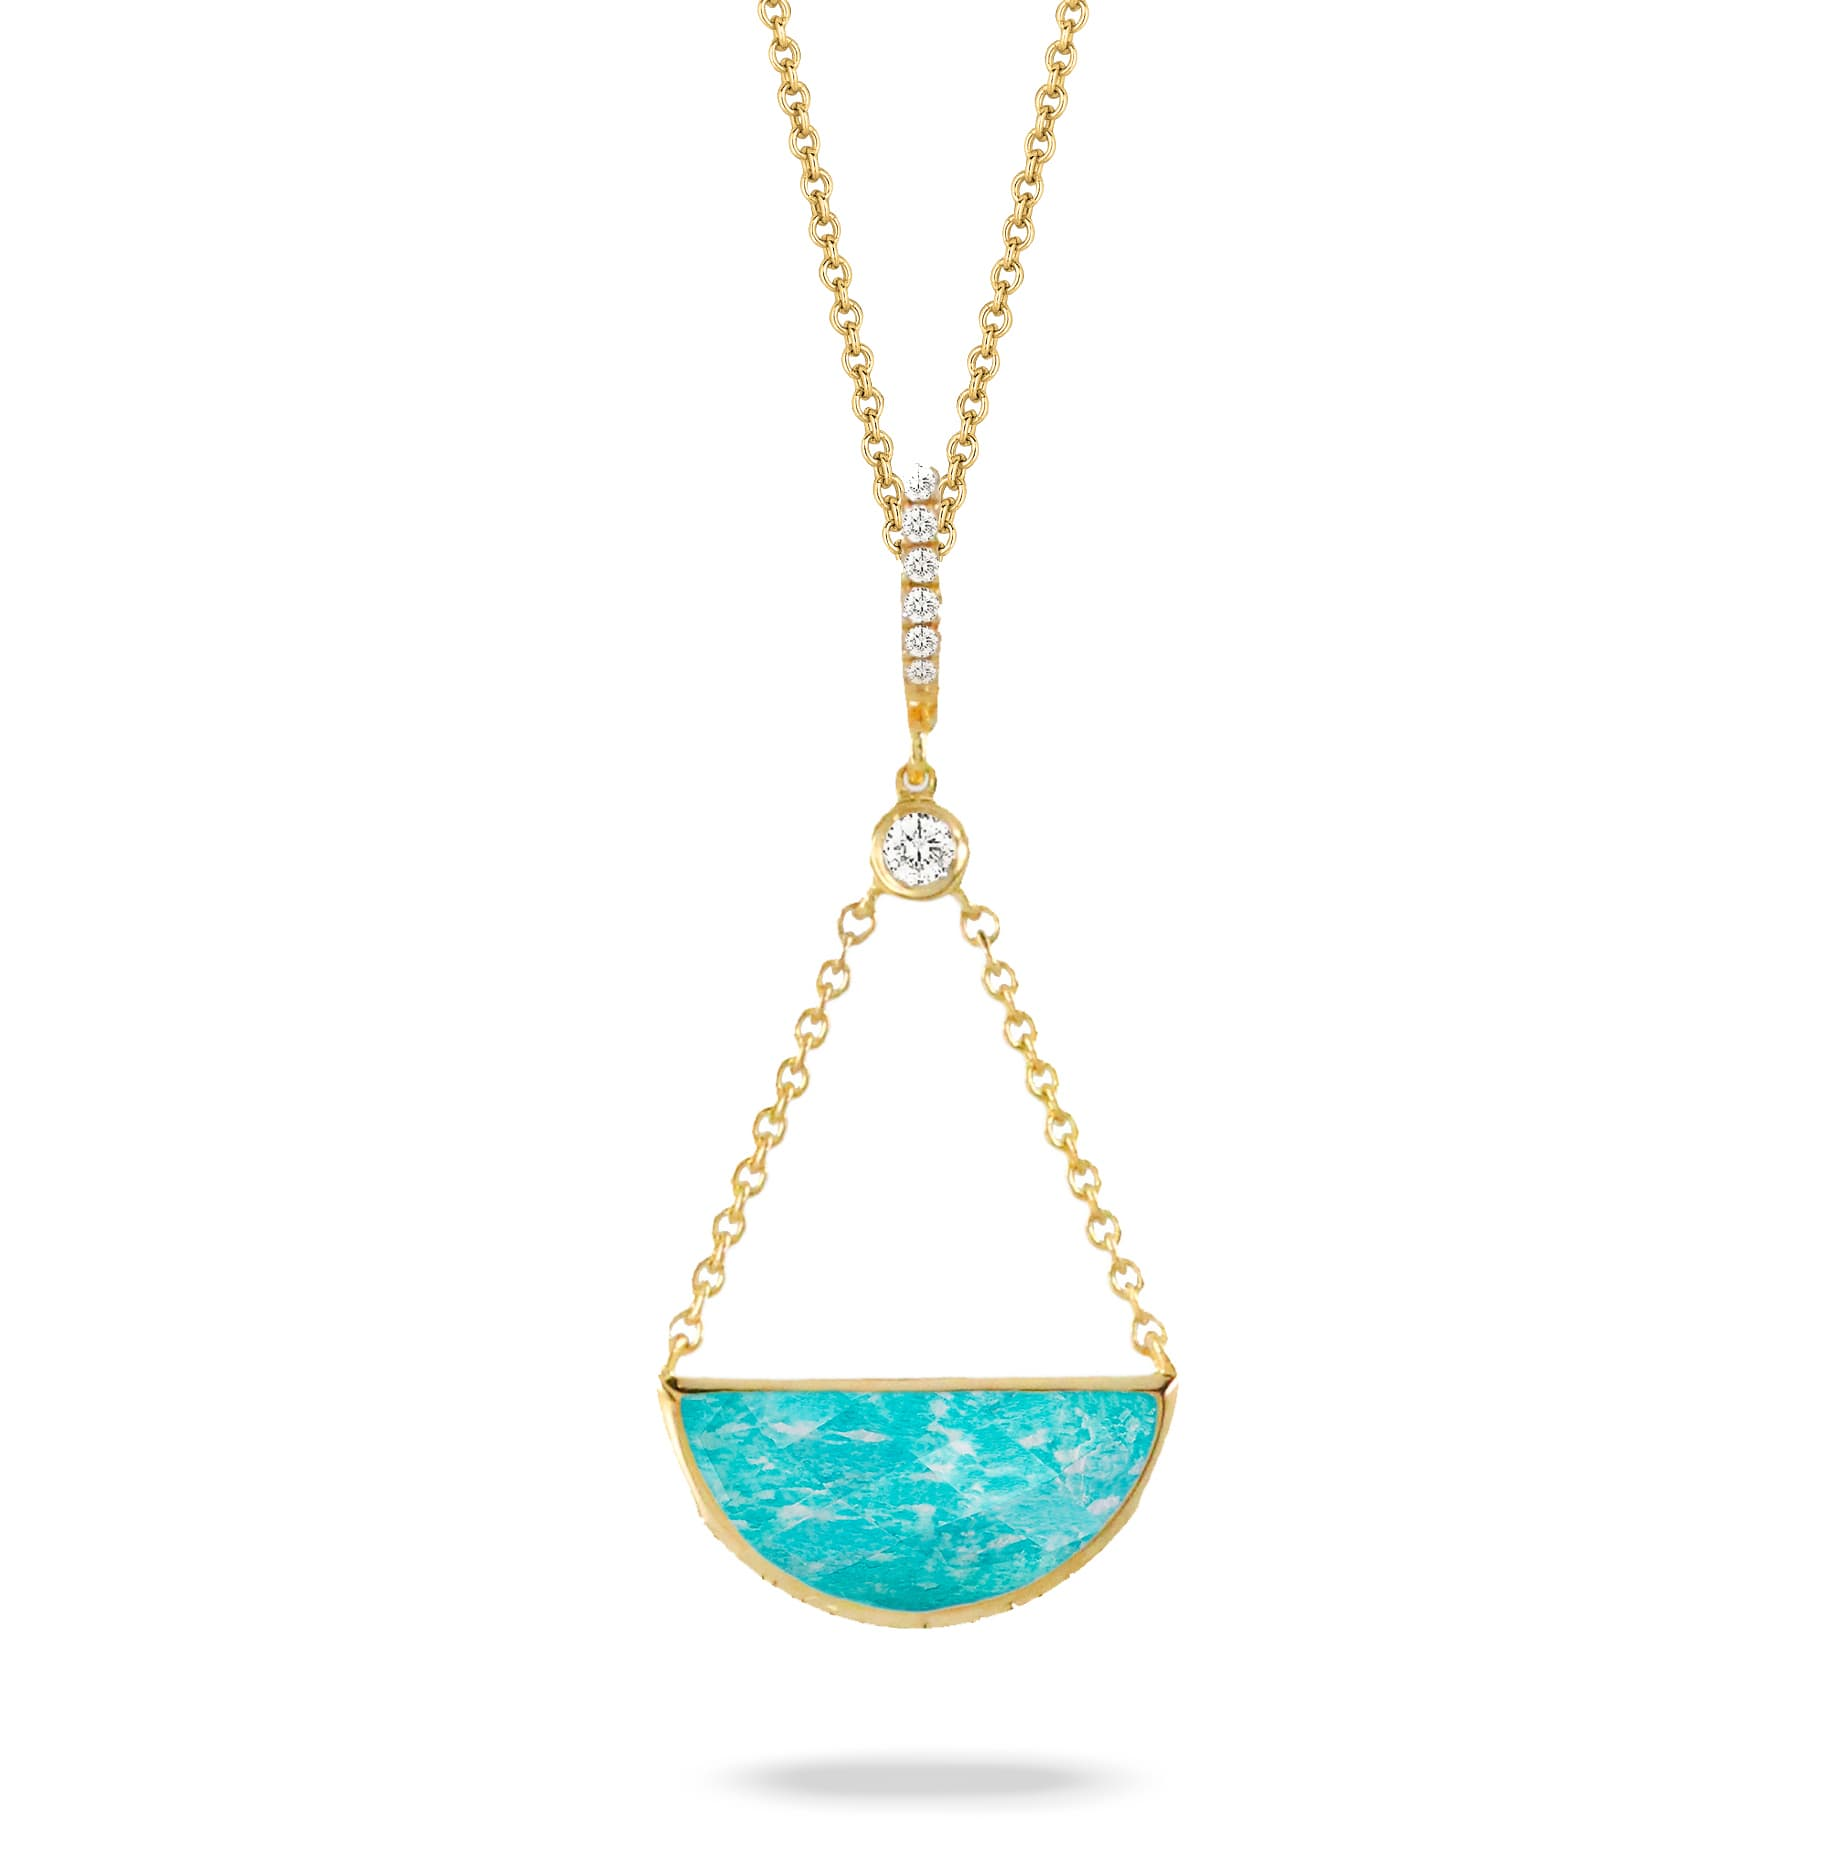 18K YELLOW GOLD DIAMOND PENDANT WITH CLEAR QUARTZ OVER AMAZONITE